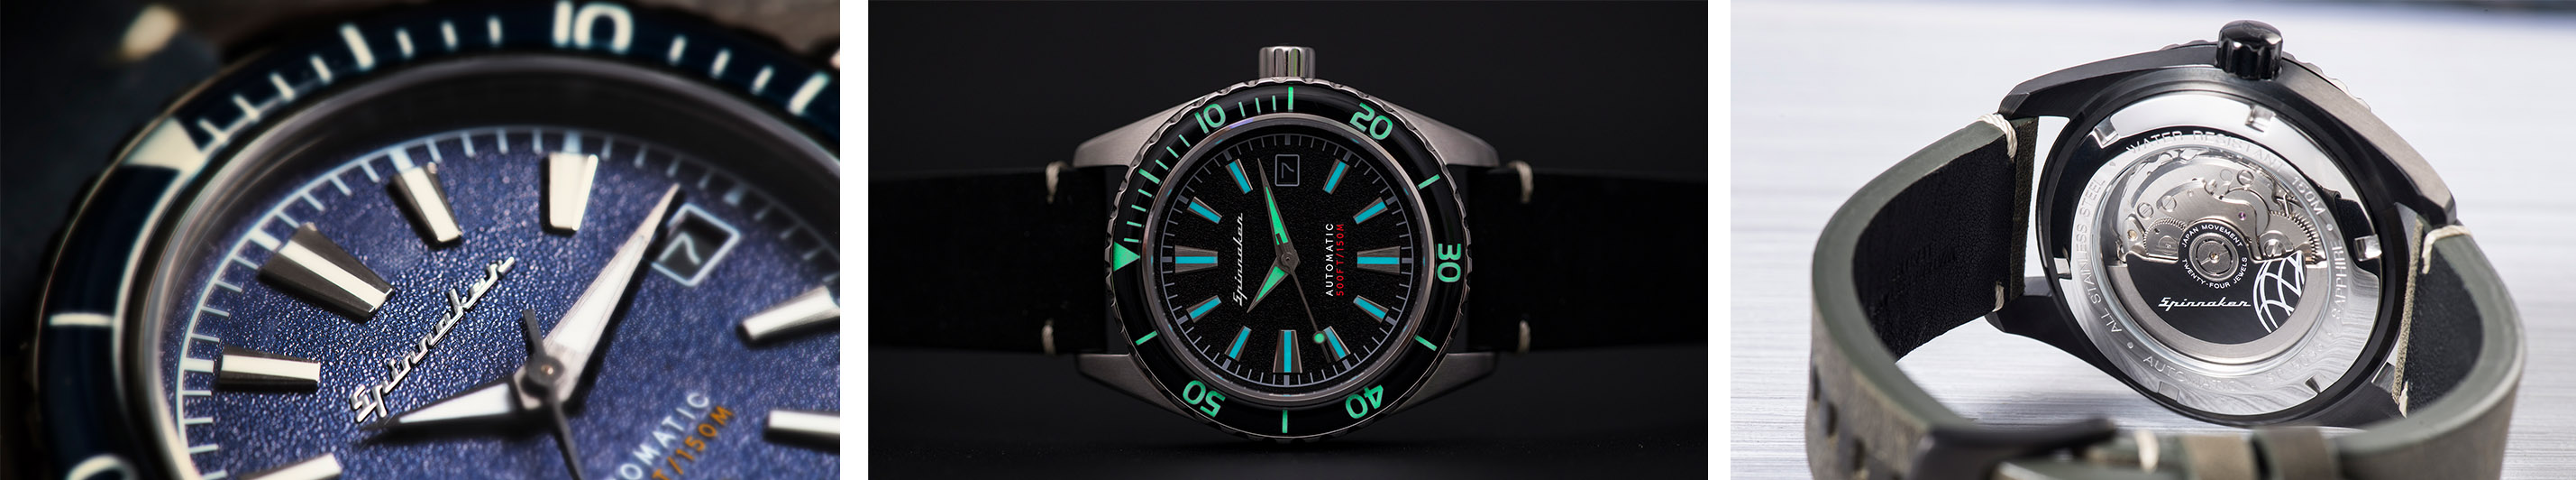 Spinnaker Fleuss_56 Series Close up, Lume shot, movement Watchandit Banner